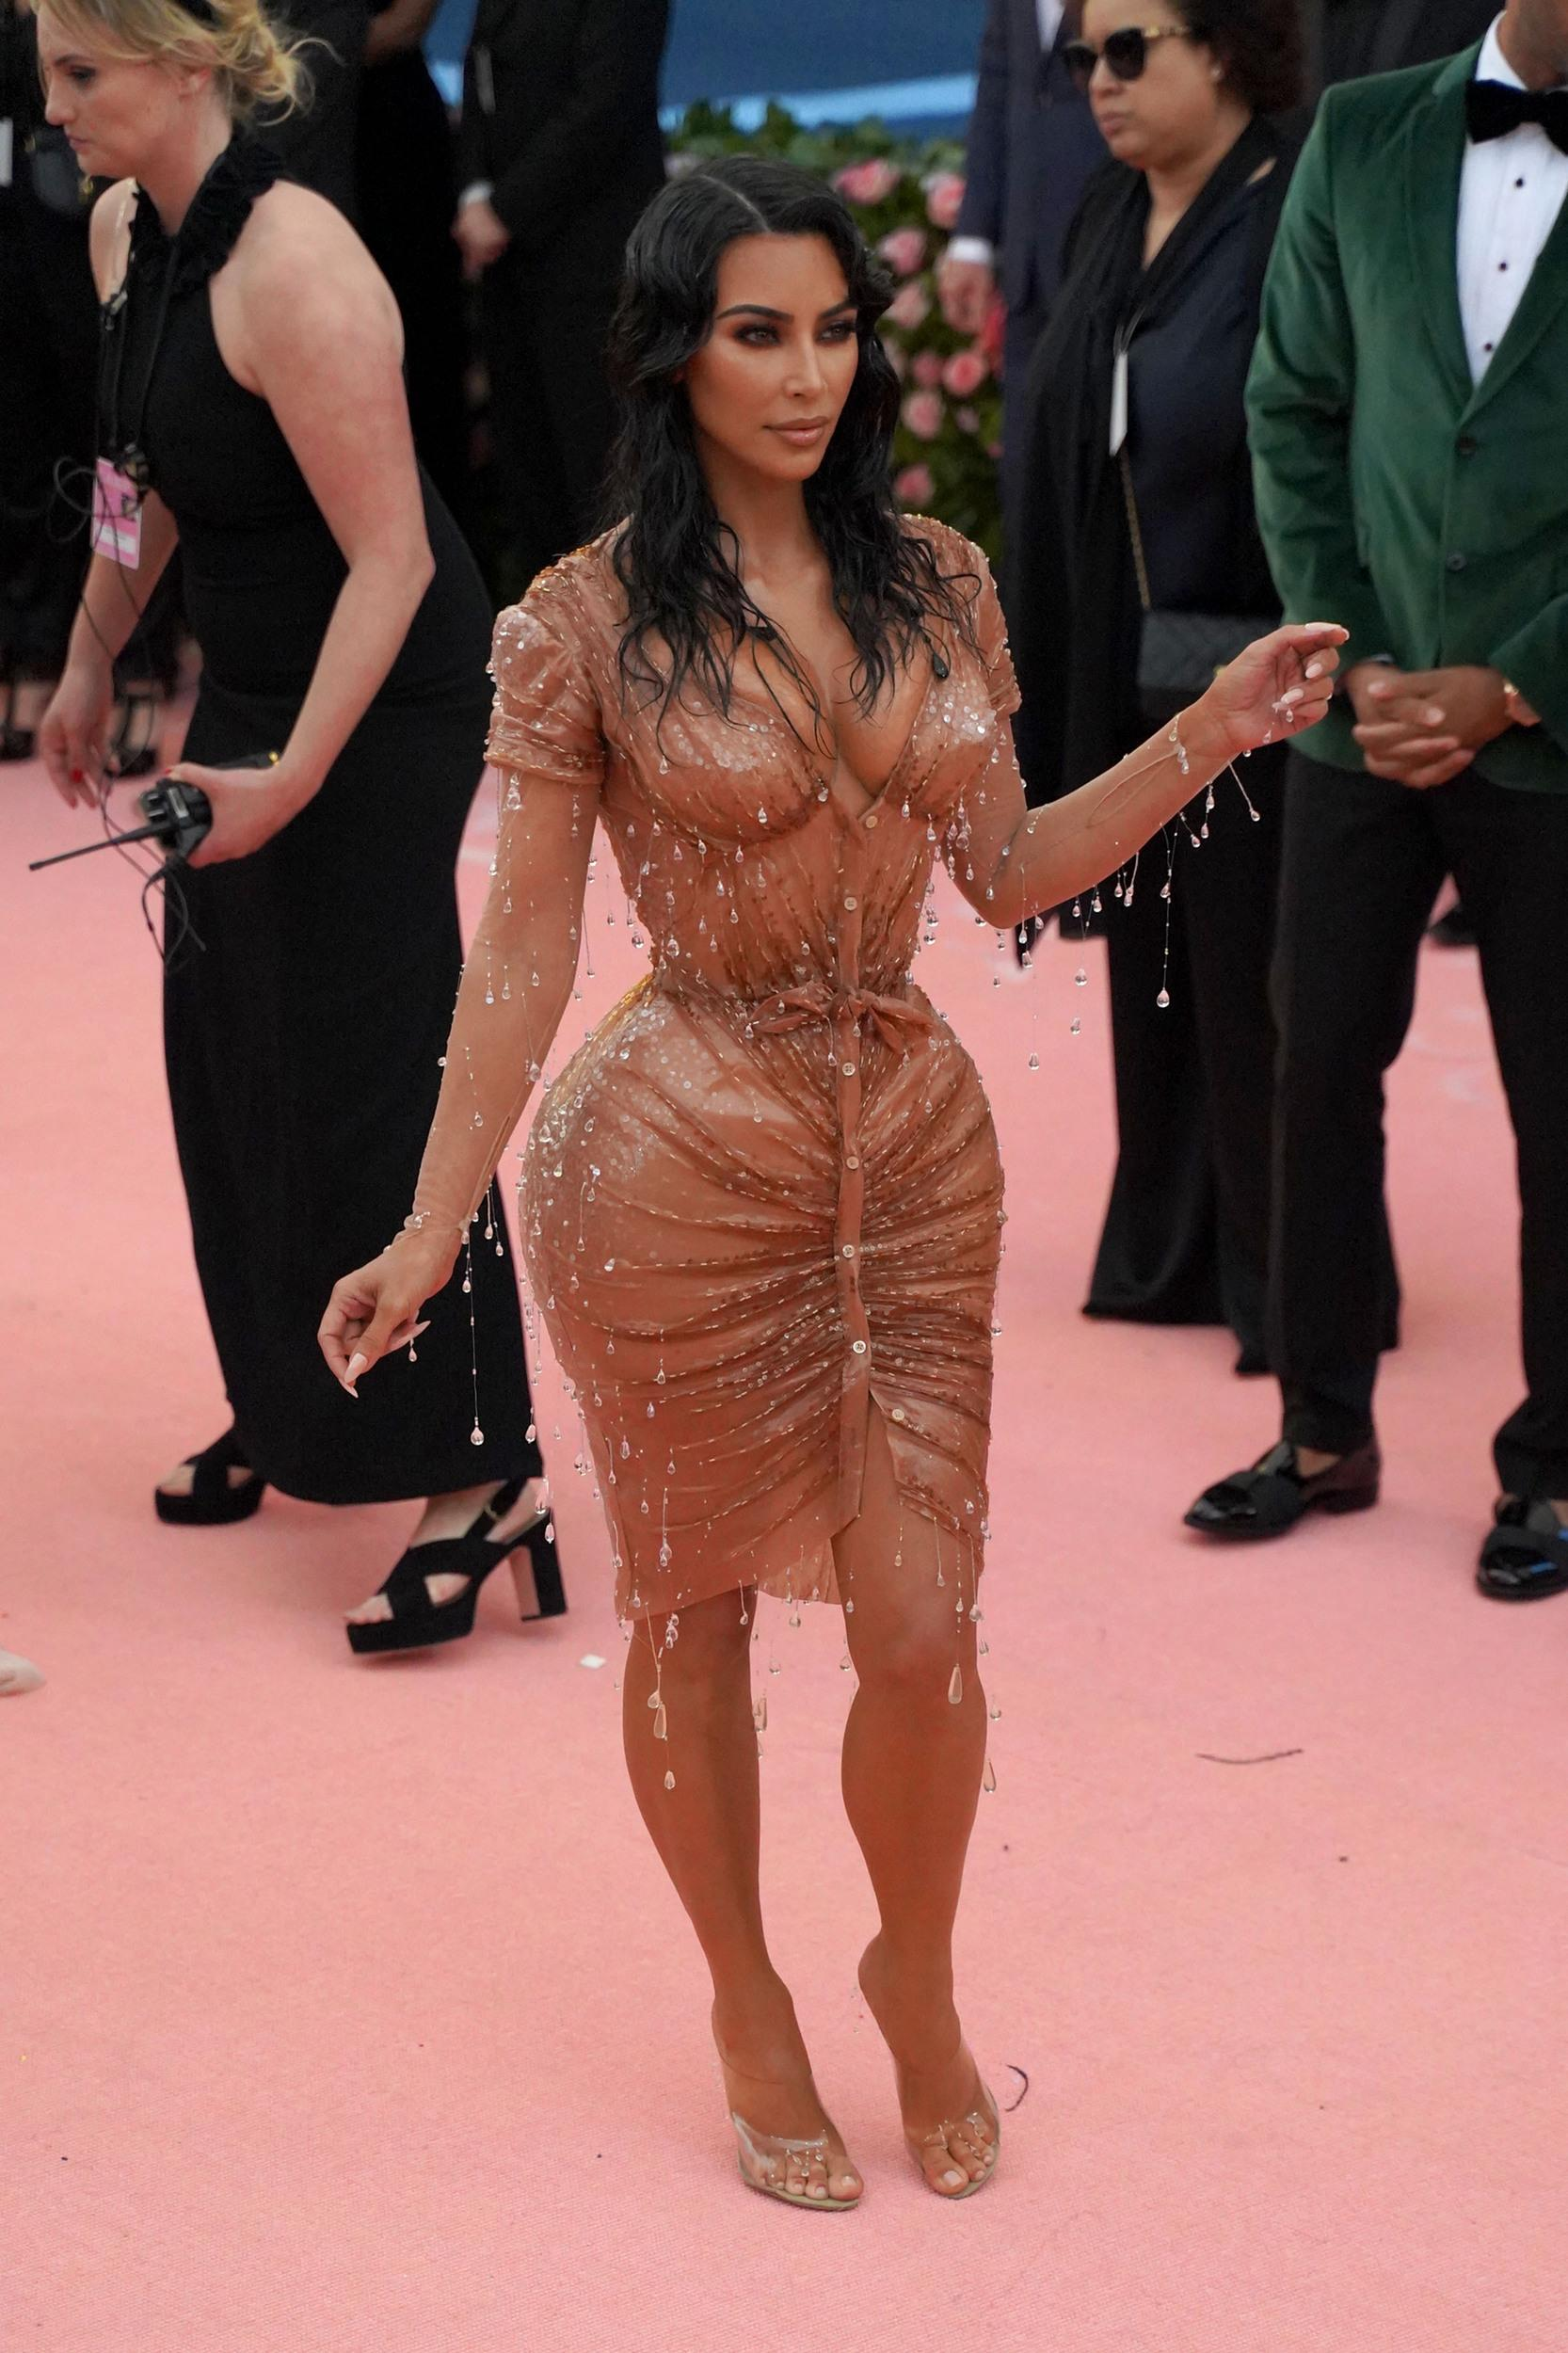 """NEW YORK, NY - MAY 6: Kim Kardashian attends The Metropolitan Museum Of Art's 2019 Costume Institute Benefit """"Camp: Notes On Fashion"""" at Metropolitan Museum of Art on May 6, 2019 in New York City. (Photo by Sean Zanni/Patrick McMullan via Getty Images)"""